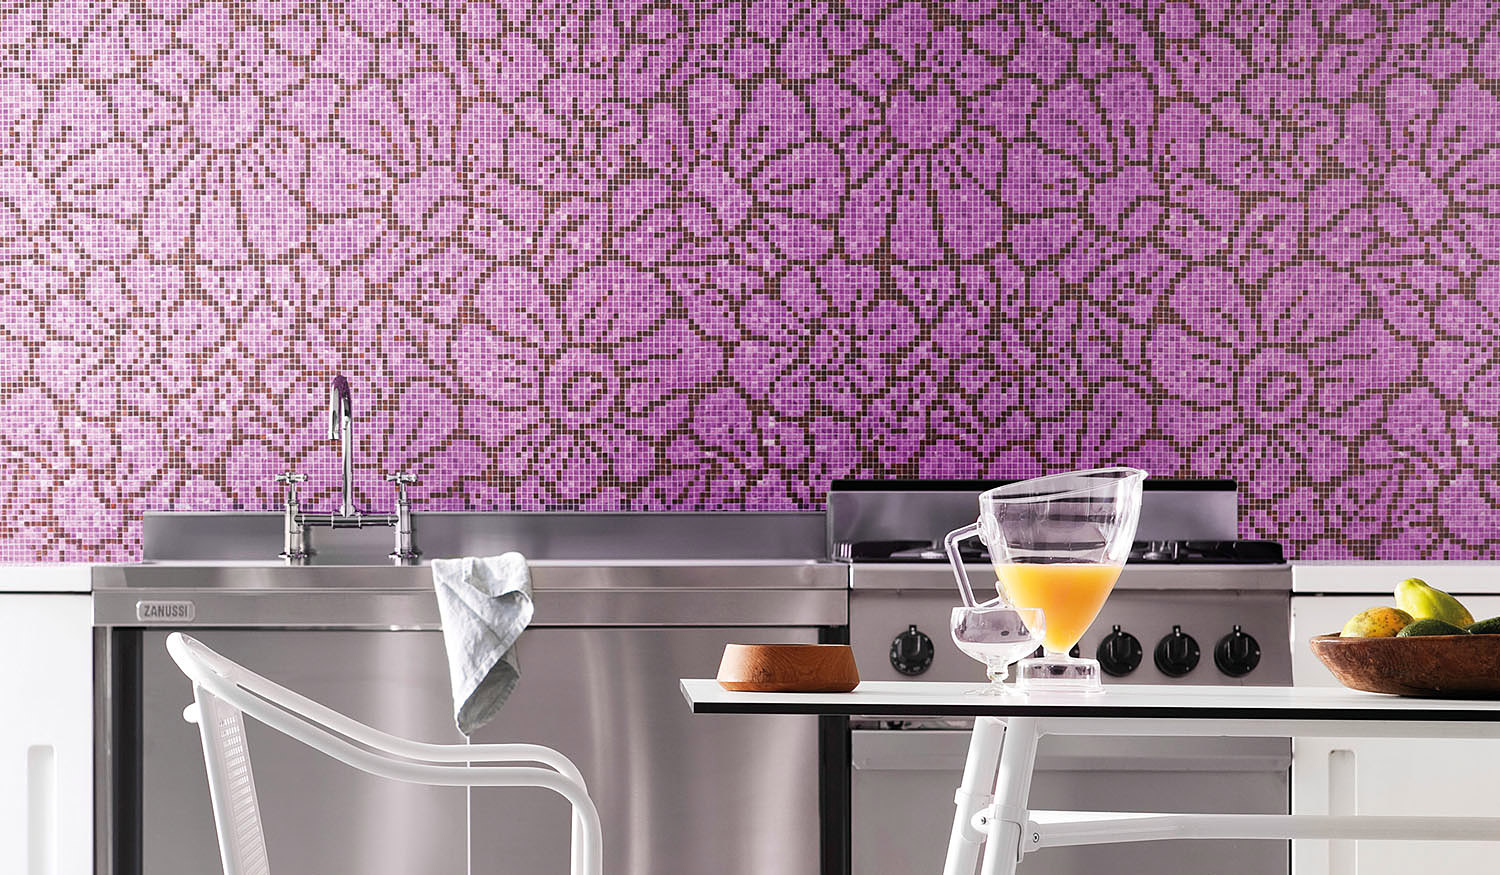 Pink mosaic art in the kitchen